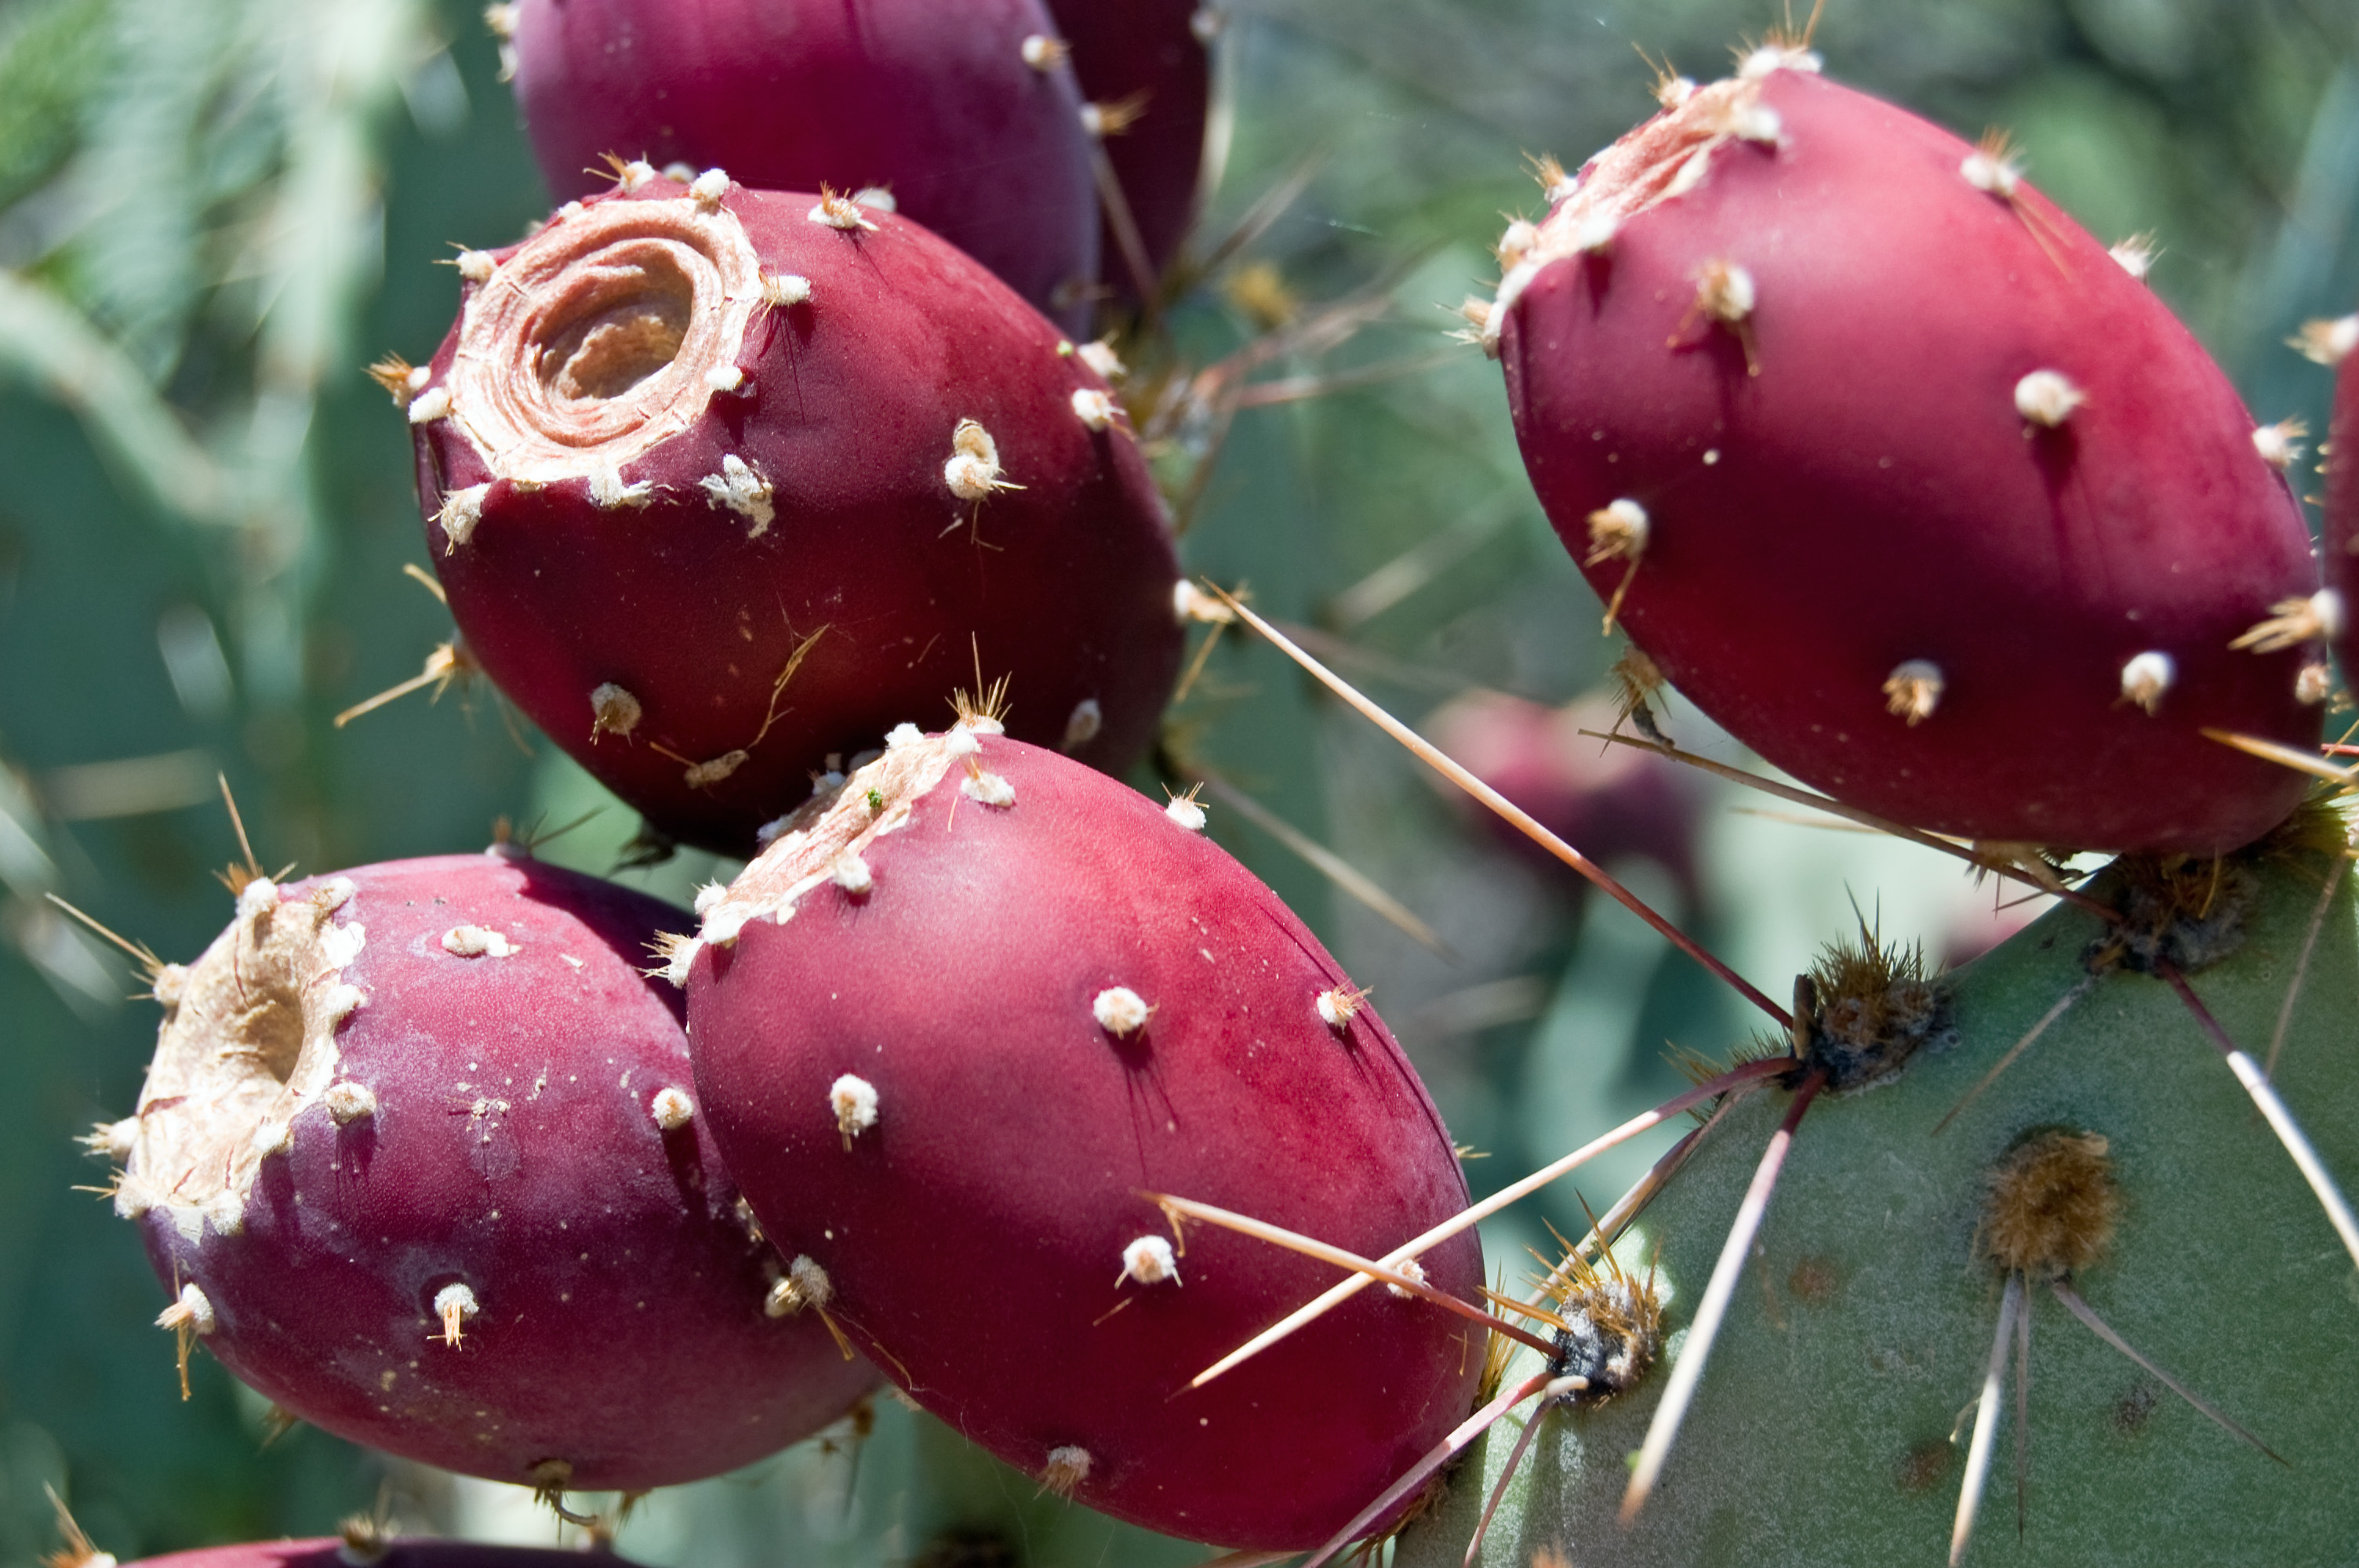 Prickly Pear Cactus Fruit | Flickr - Photo Sharing! - photo#32